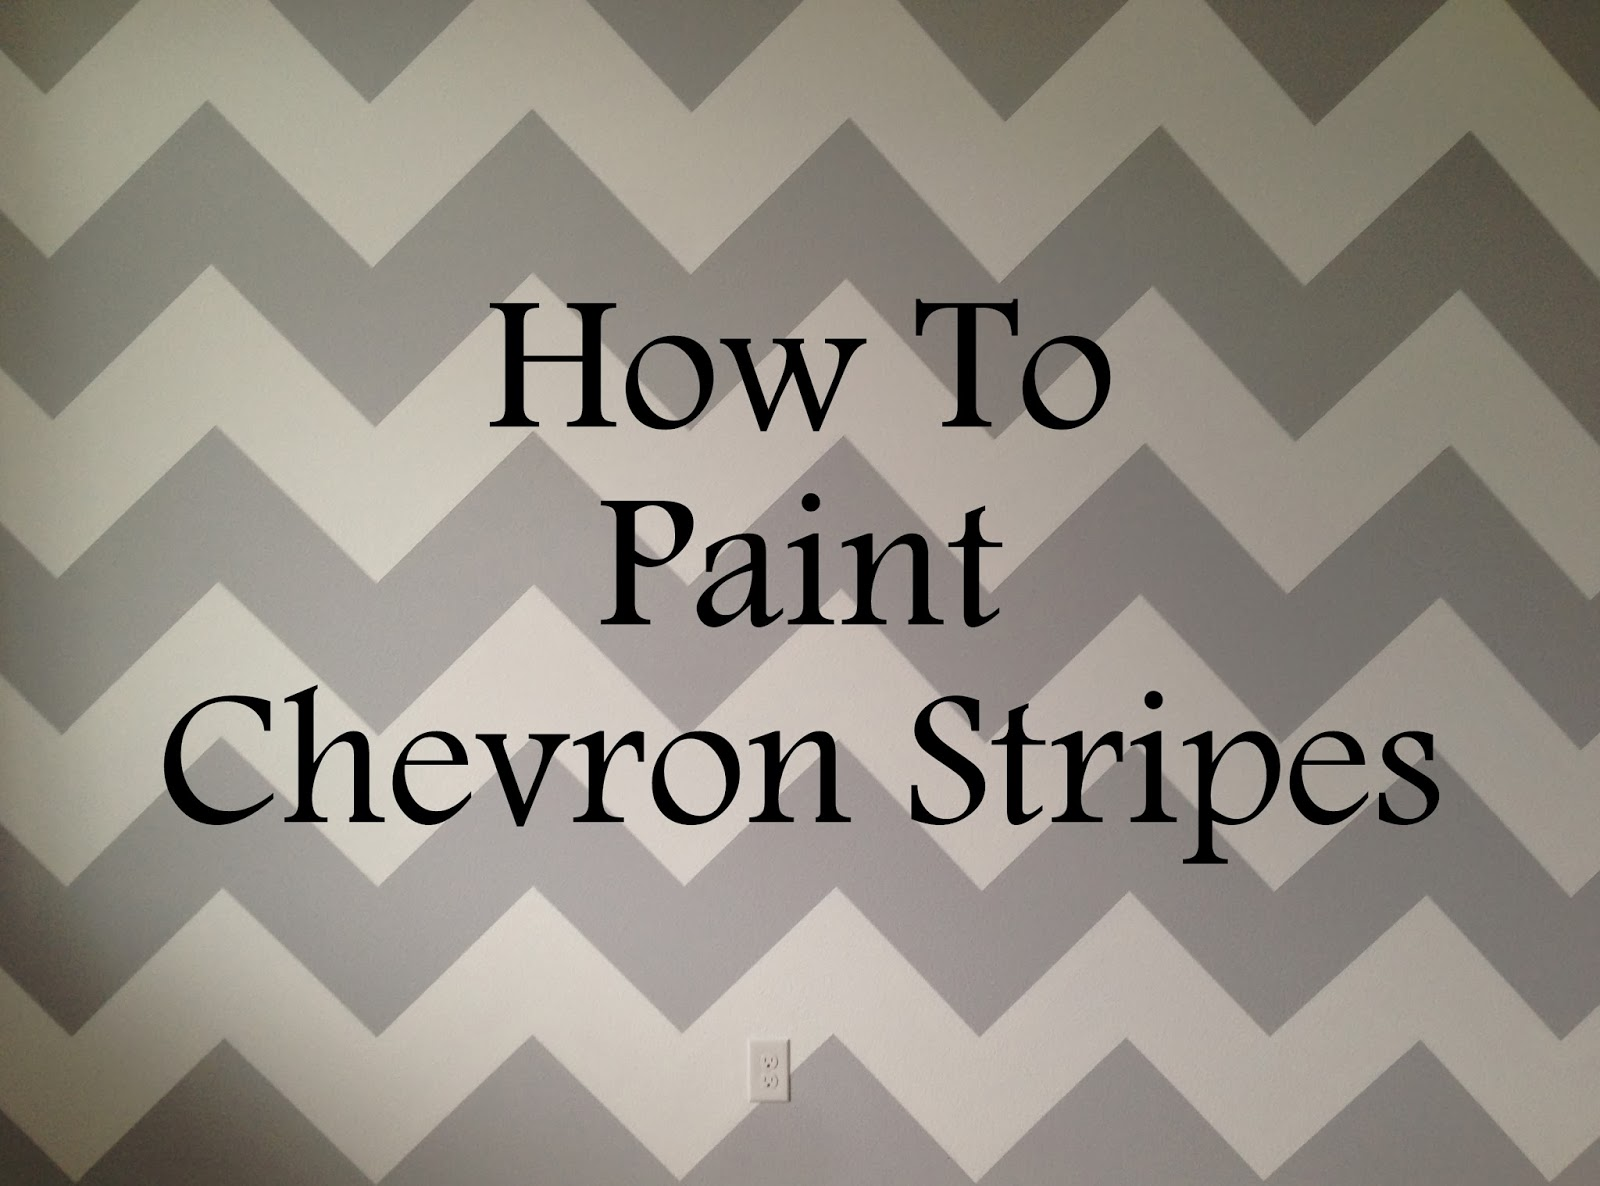 chevron template for painting - life as always live learn how to paint chevron stripes